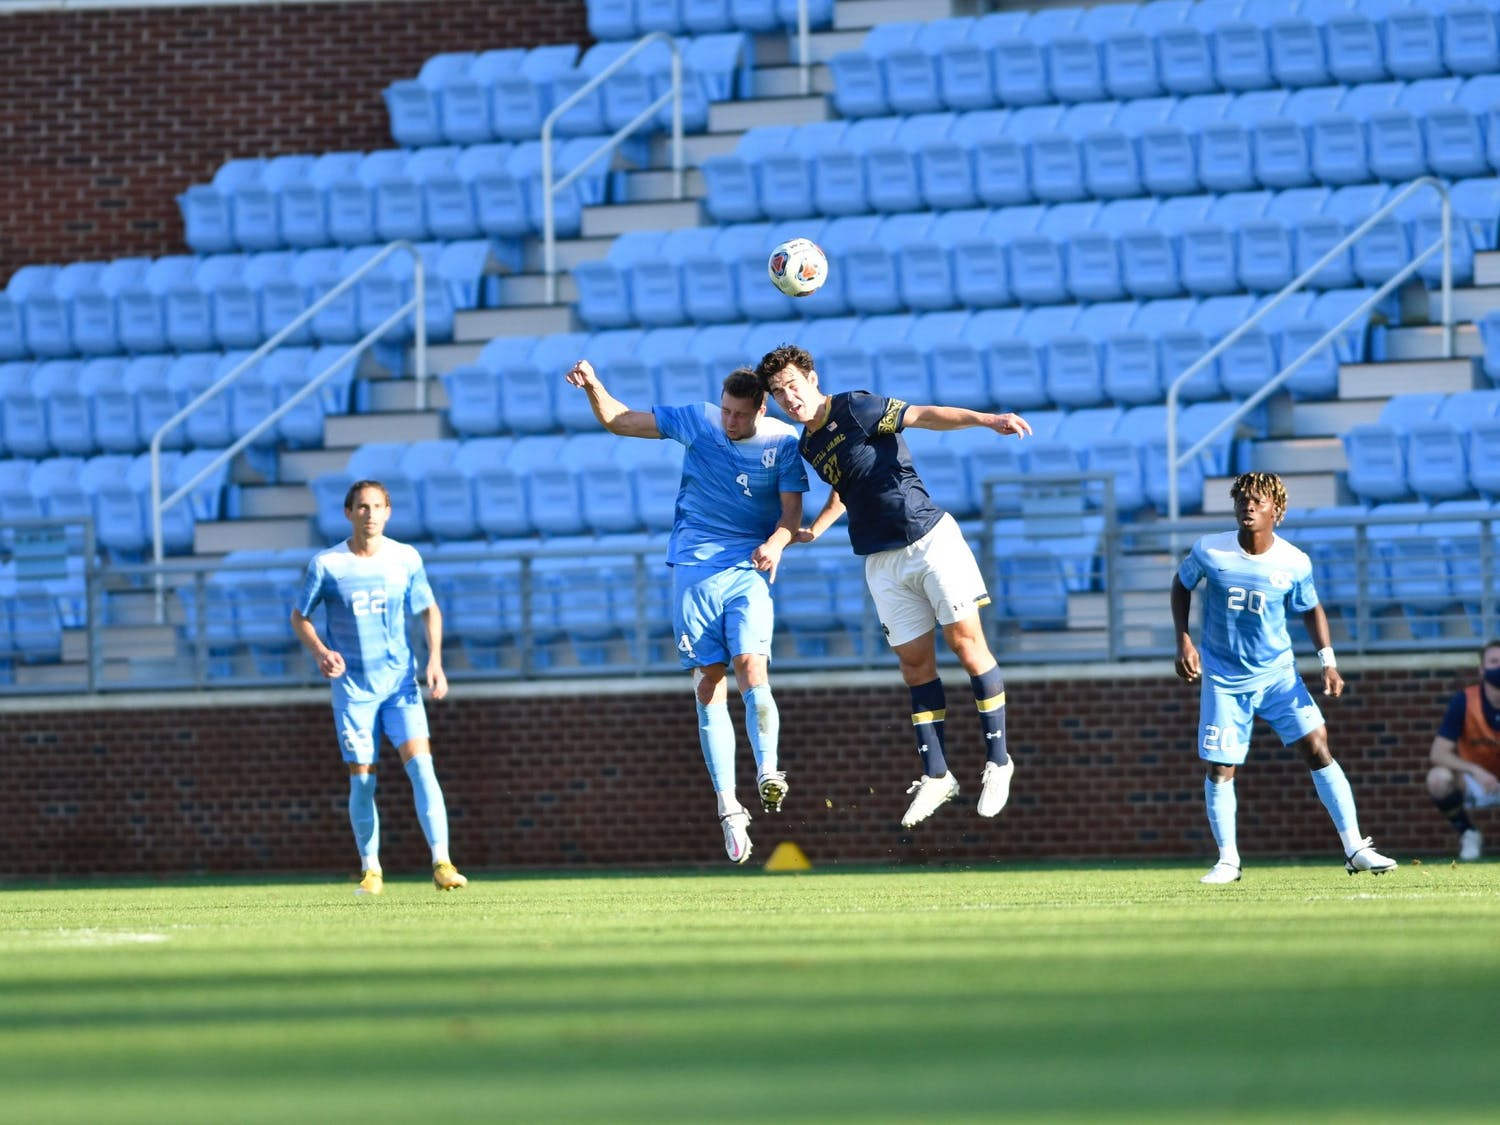 UNC's graduate defender Joe Pickering (4) goes up for a header against Notre Dame's junior forward Jack Lynn (27) during the first round of the ACC tournament in Dorrance Field on Sunday, Nov. 15, 2020. UNC fell to Notre Dame 1-0. Photo courtesy of Dana Gentry for UNC Athletic Communications.